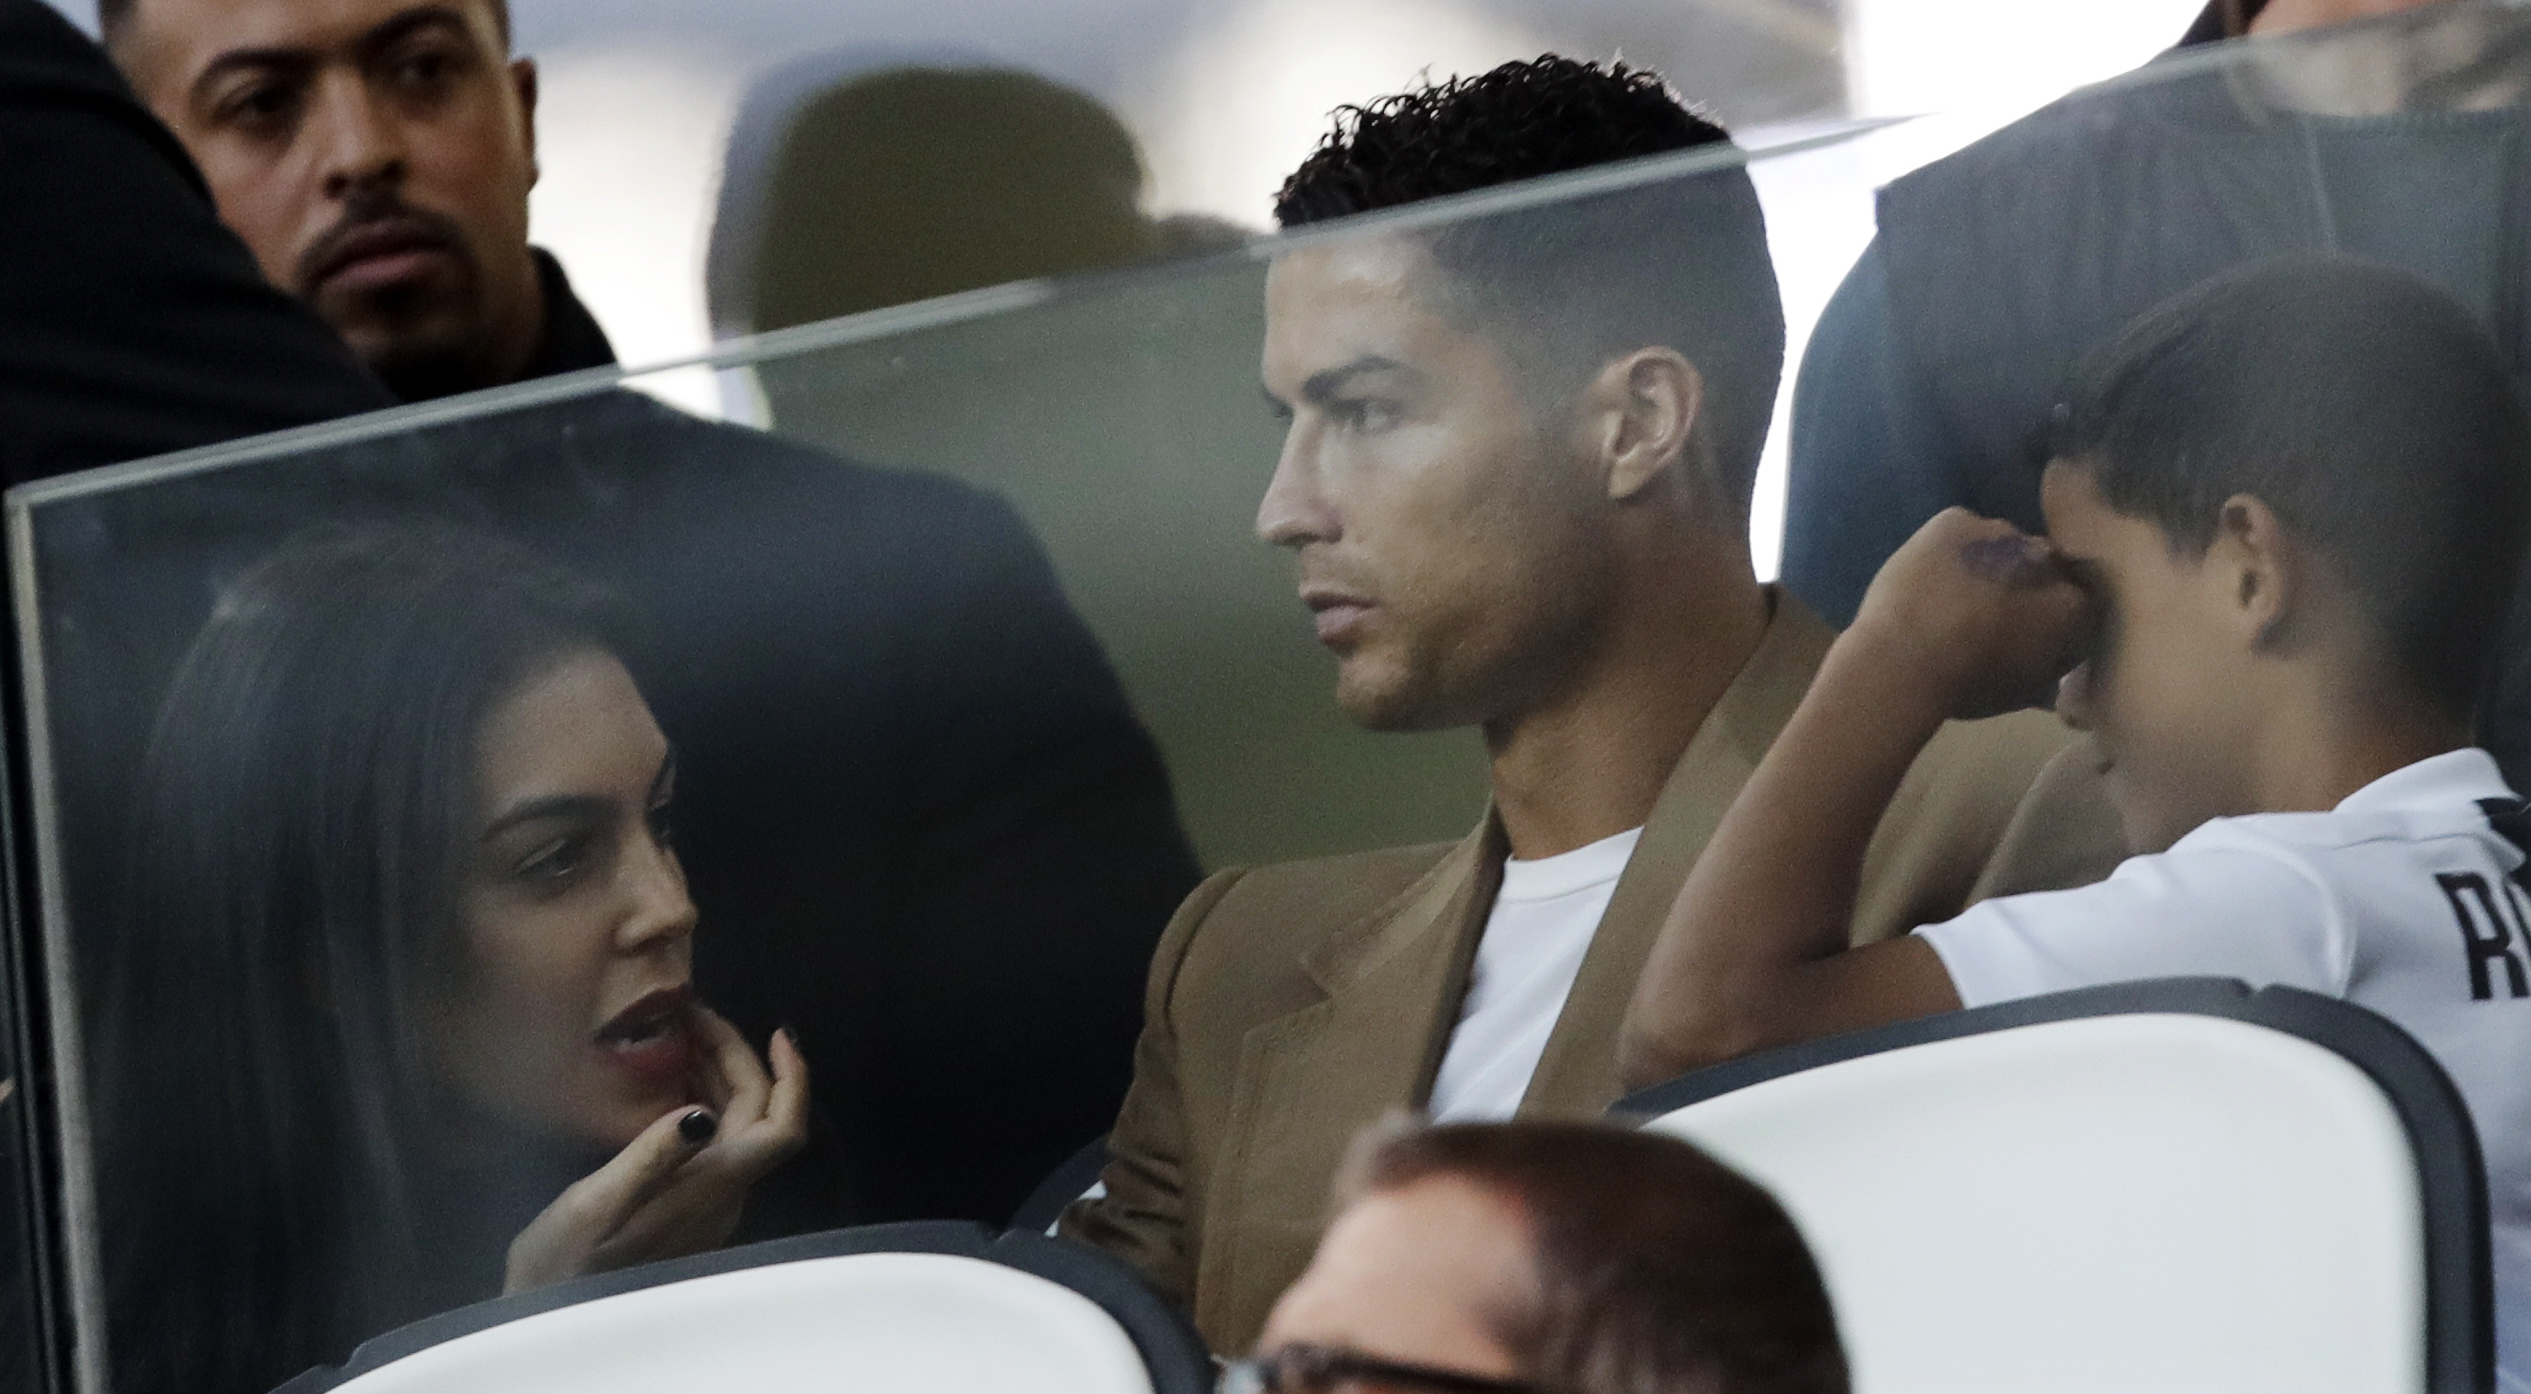 Cristiano Ronaldo is flanked by his girlfriend Georgina, left, and his son Cristiano Jr, as he sits in the stands during a Champions League group H soccer match between Juventus and Young Boys, at the Allianz stadium in Turin